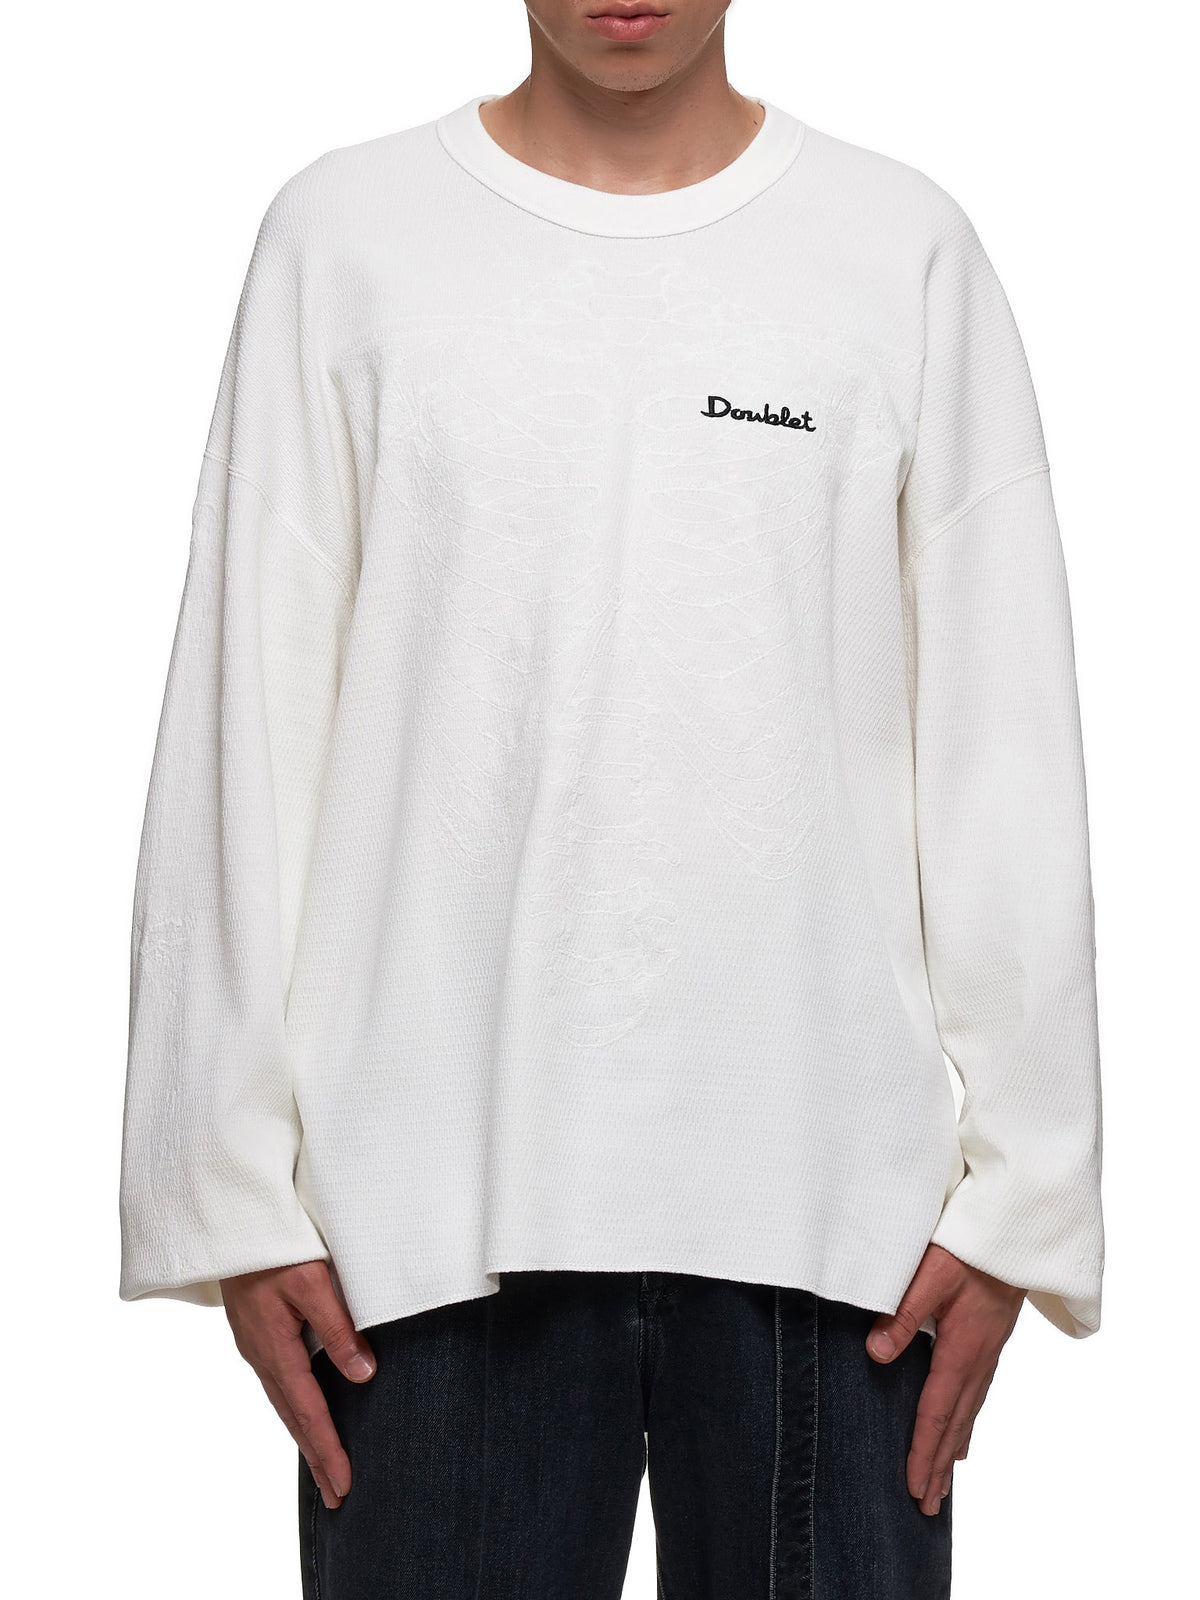 Doublet Tee Shirt - Hlorenzo Front